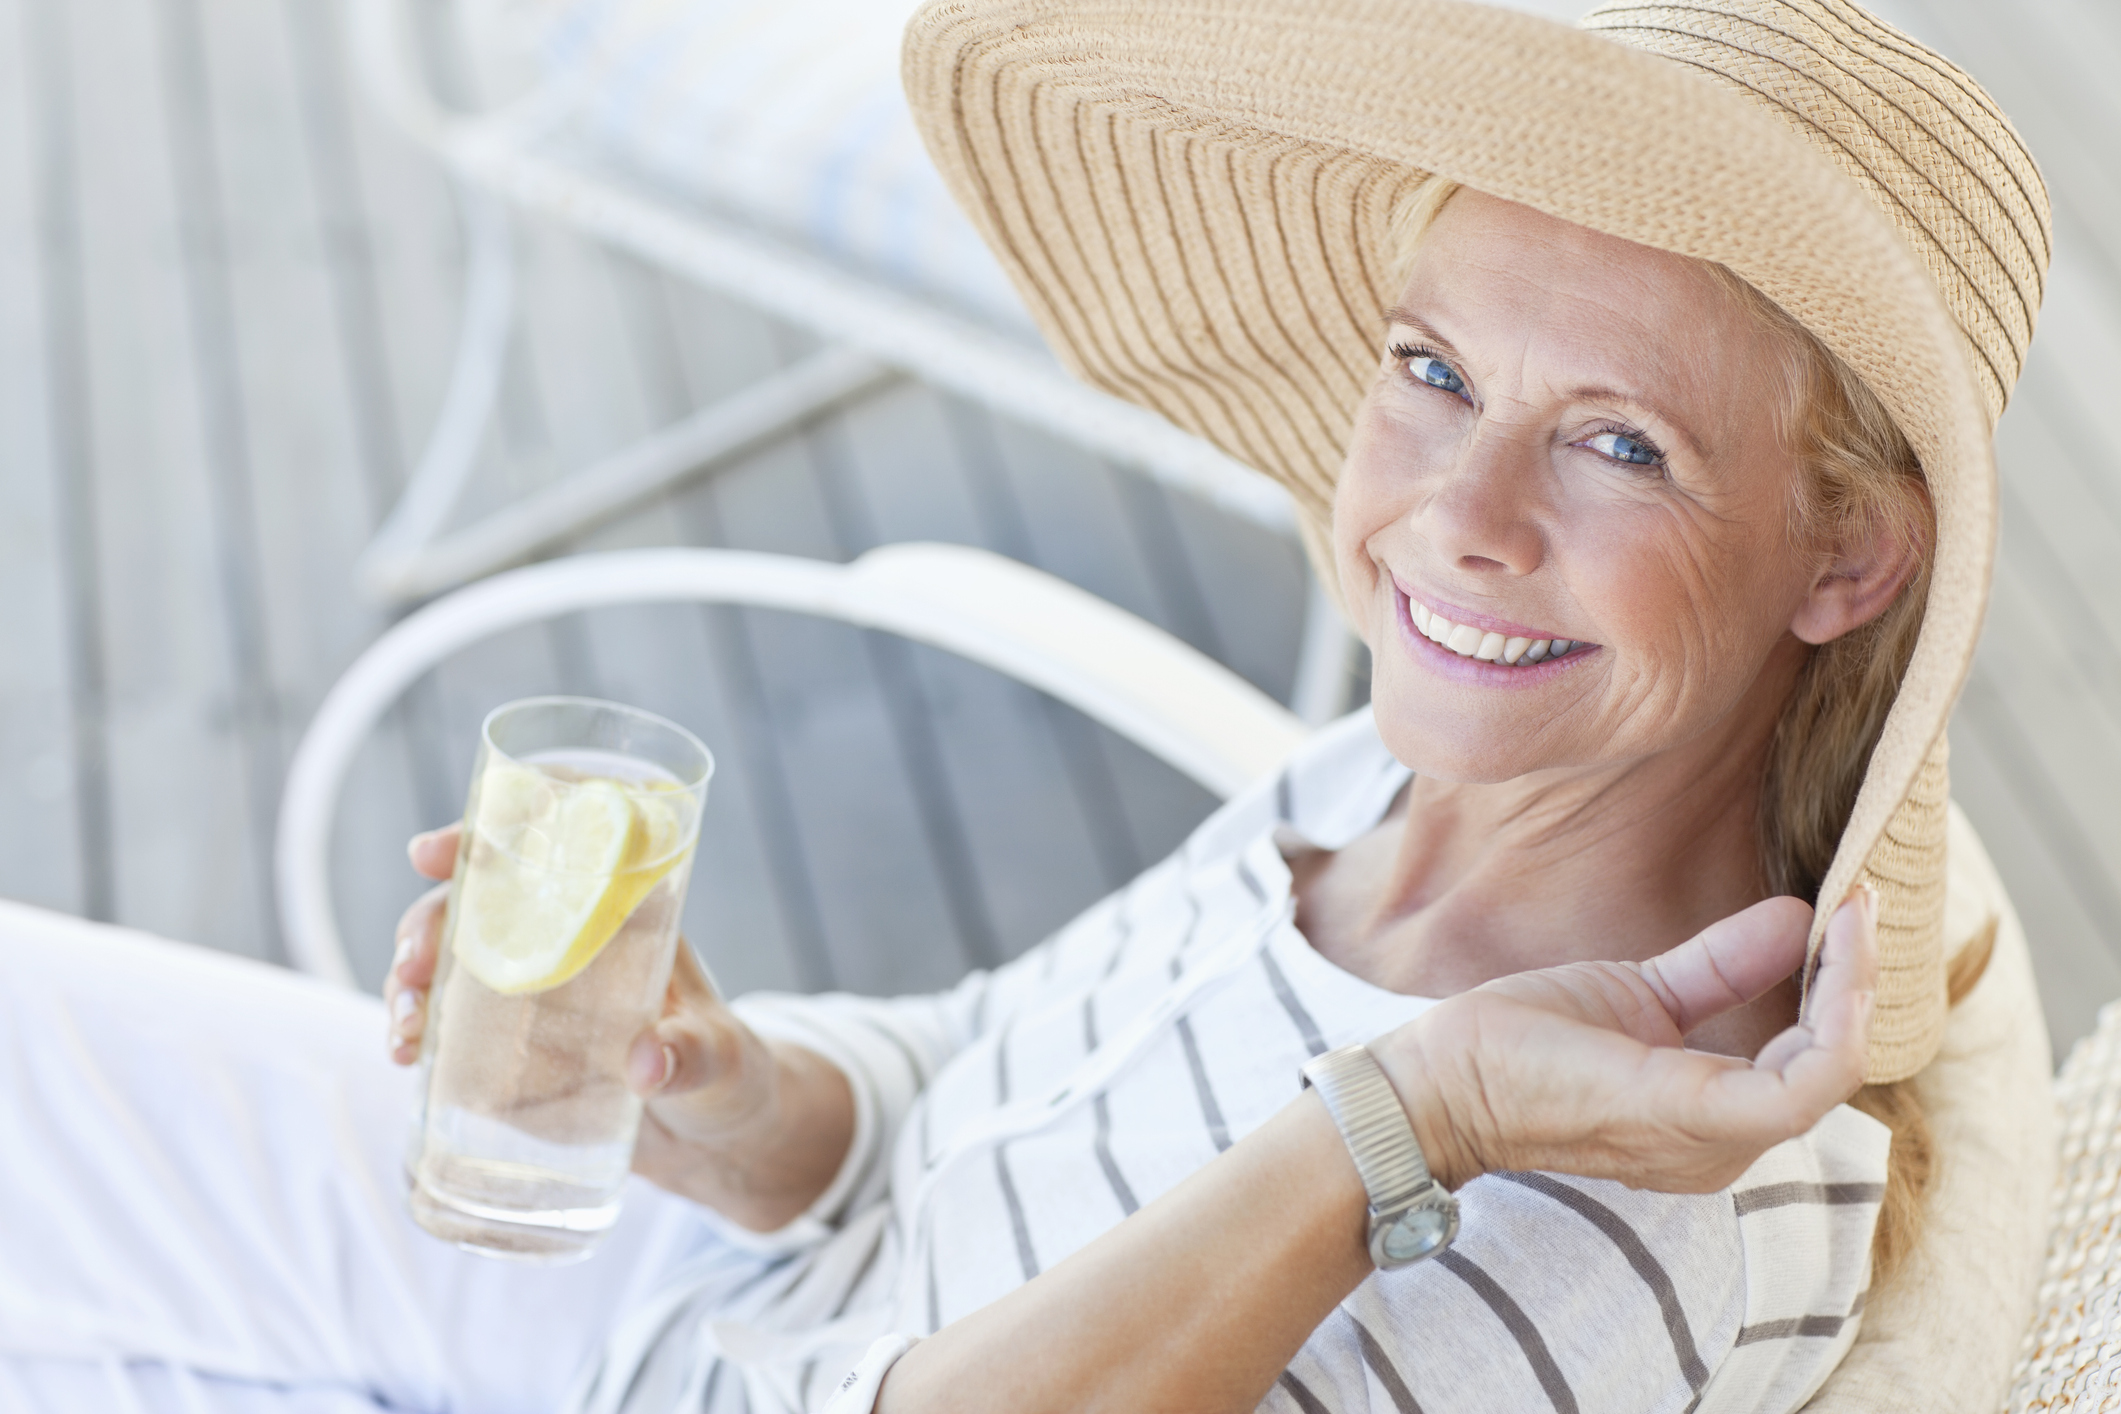 One more reason for seniors to stay cool: Neurodegeneration